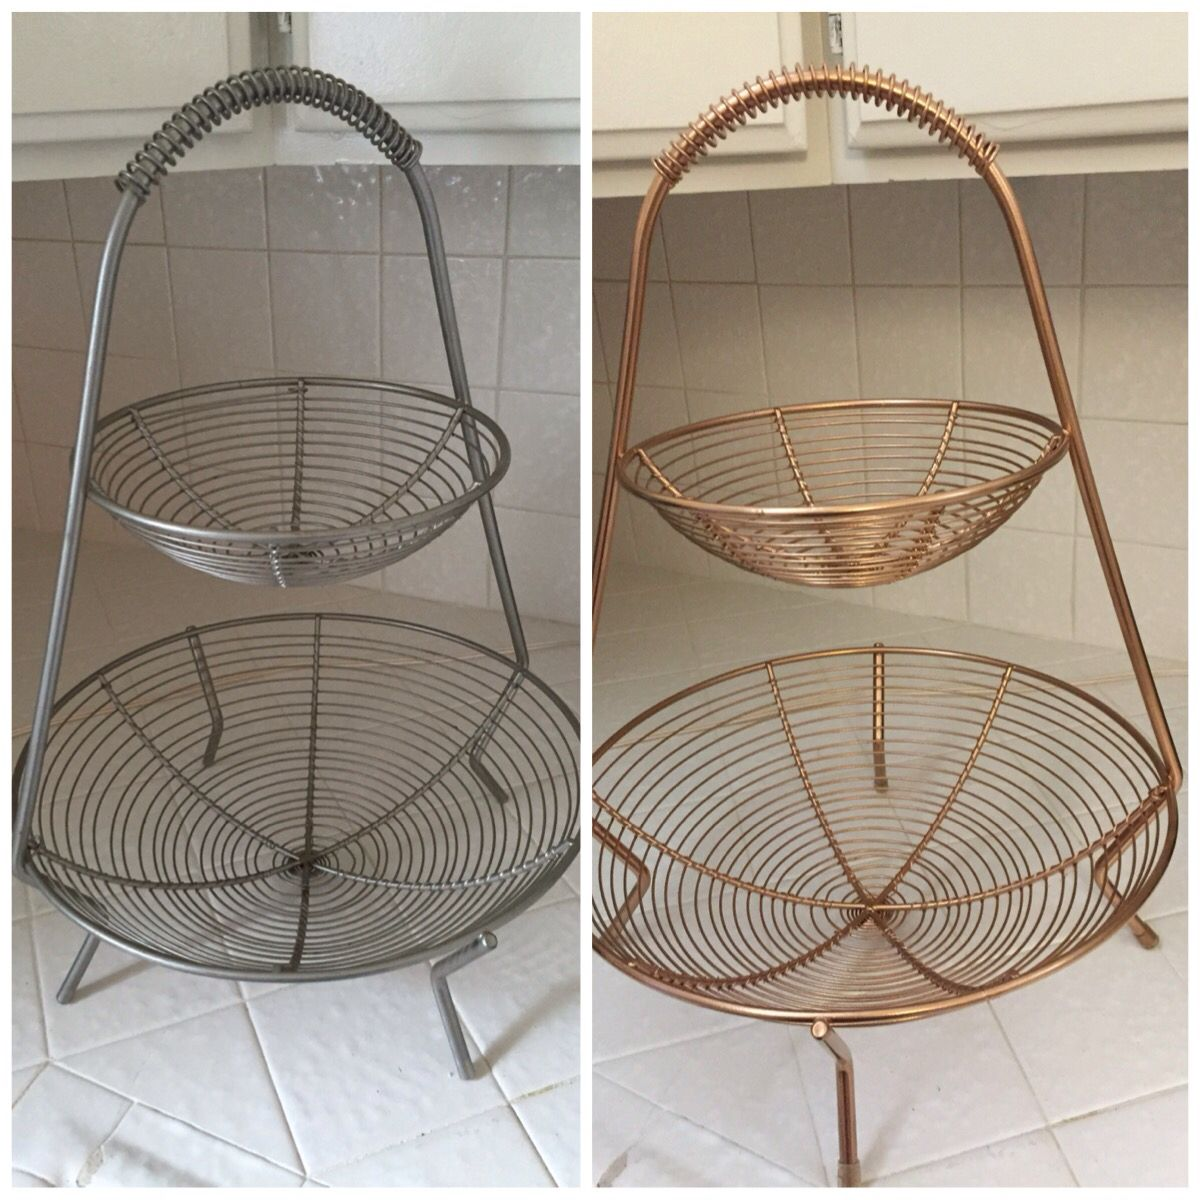 Black And Silver Kitchen Accessories: Before And After! Silver Fruit Baskets Spray Painted With